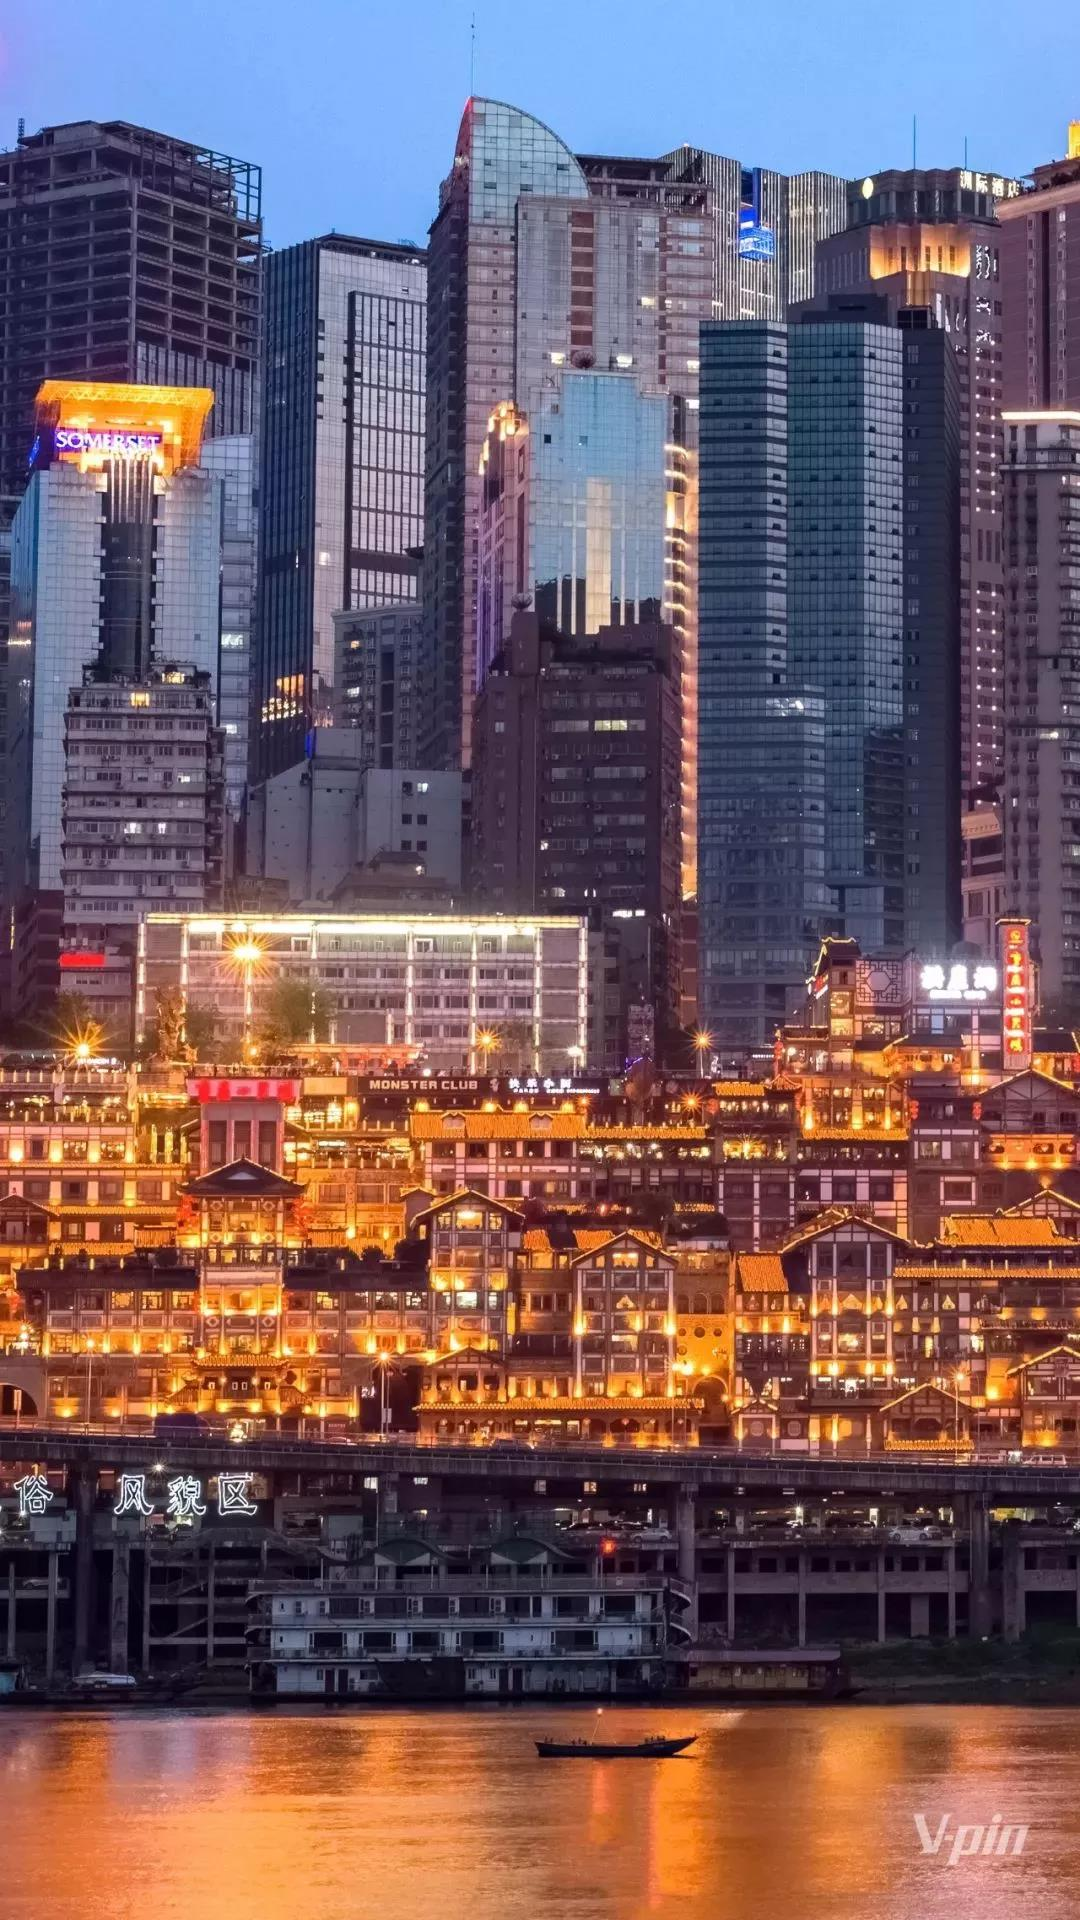 Put-Your-Passion-for-this-City-on-Your-Phone-Wallpaper-of-Chongqing